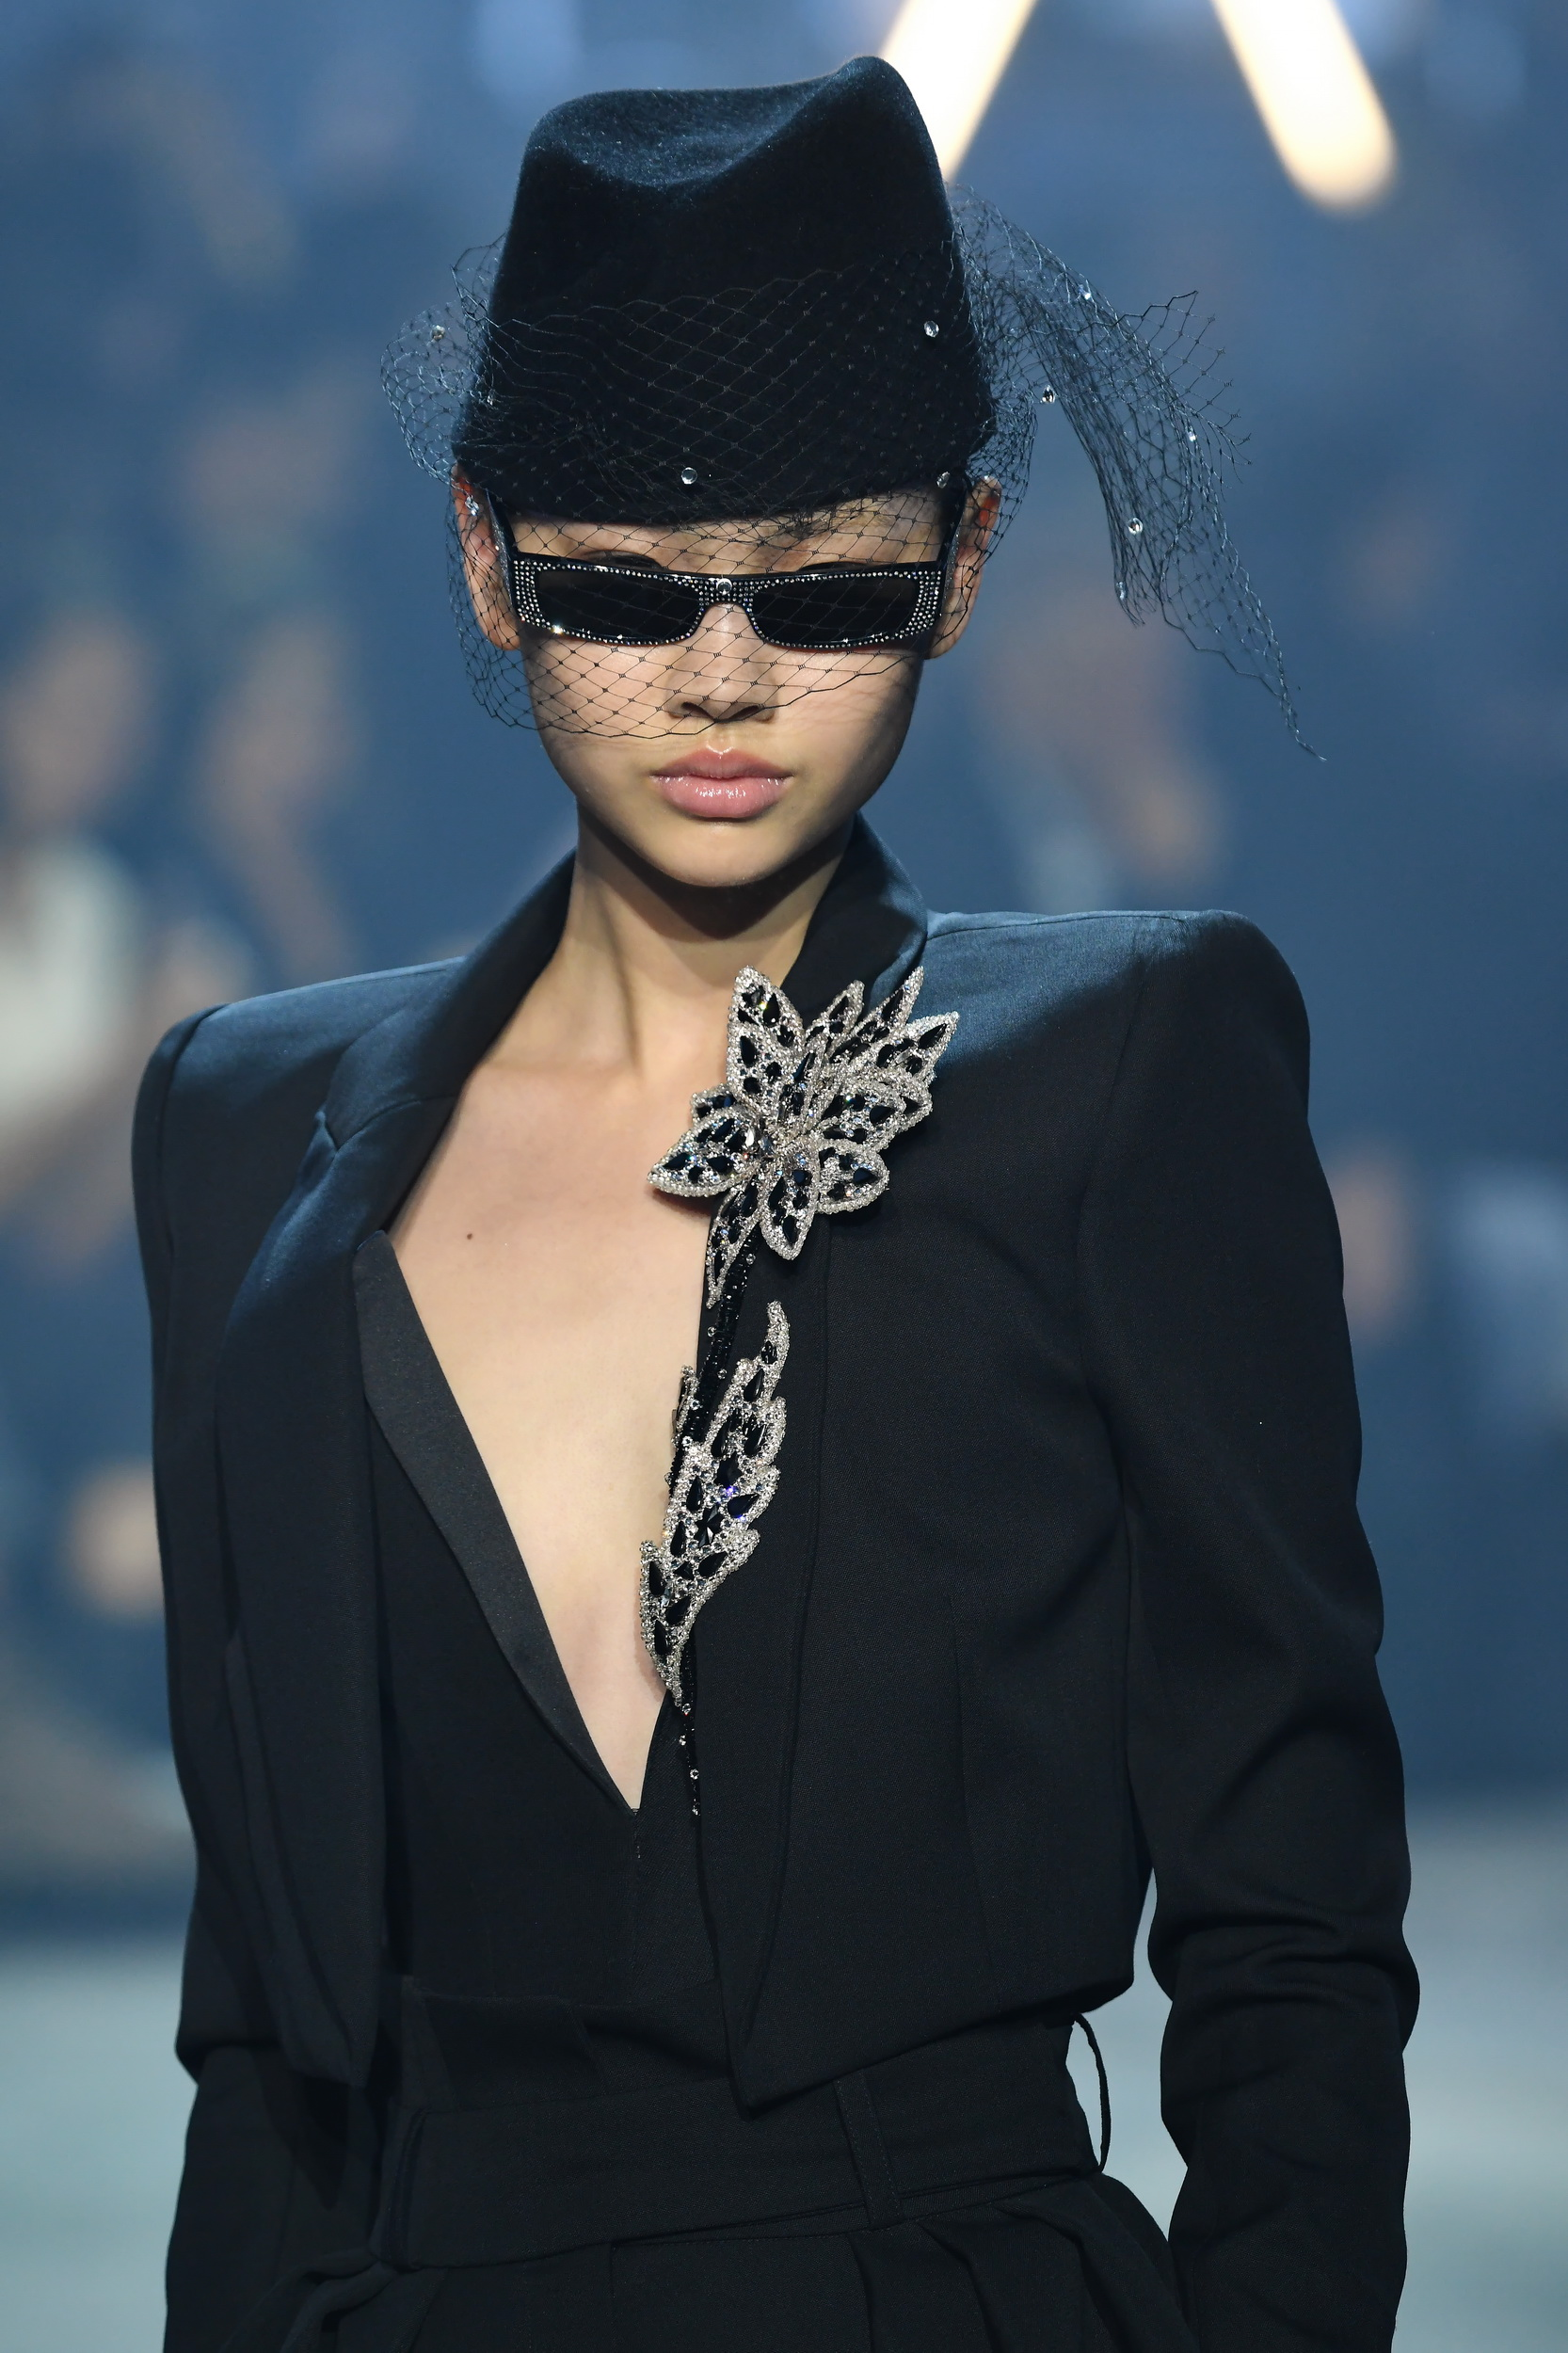 Alexandre Vauthier  Runway - Paris Fashion Week - Haute Couture 4to4u Arthur Koff 8.JPG